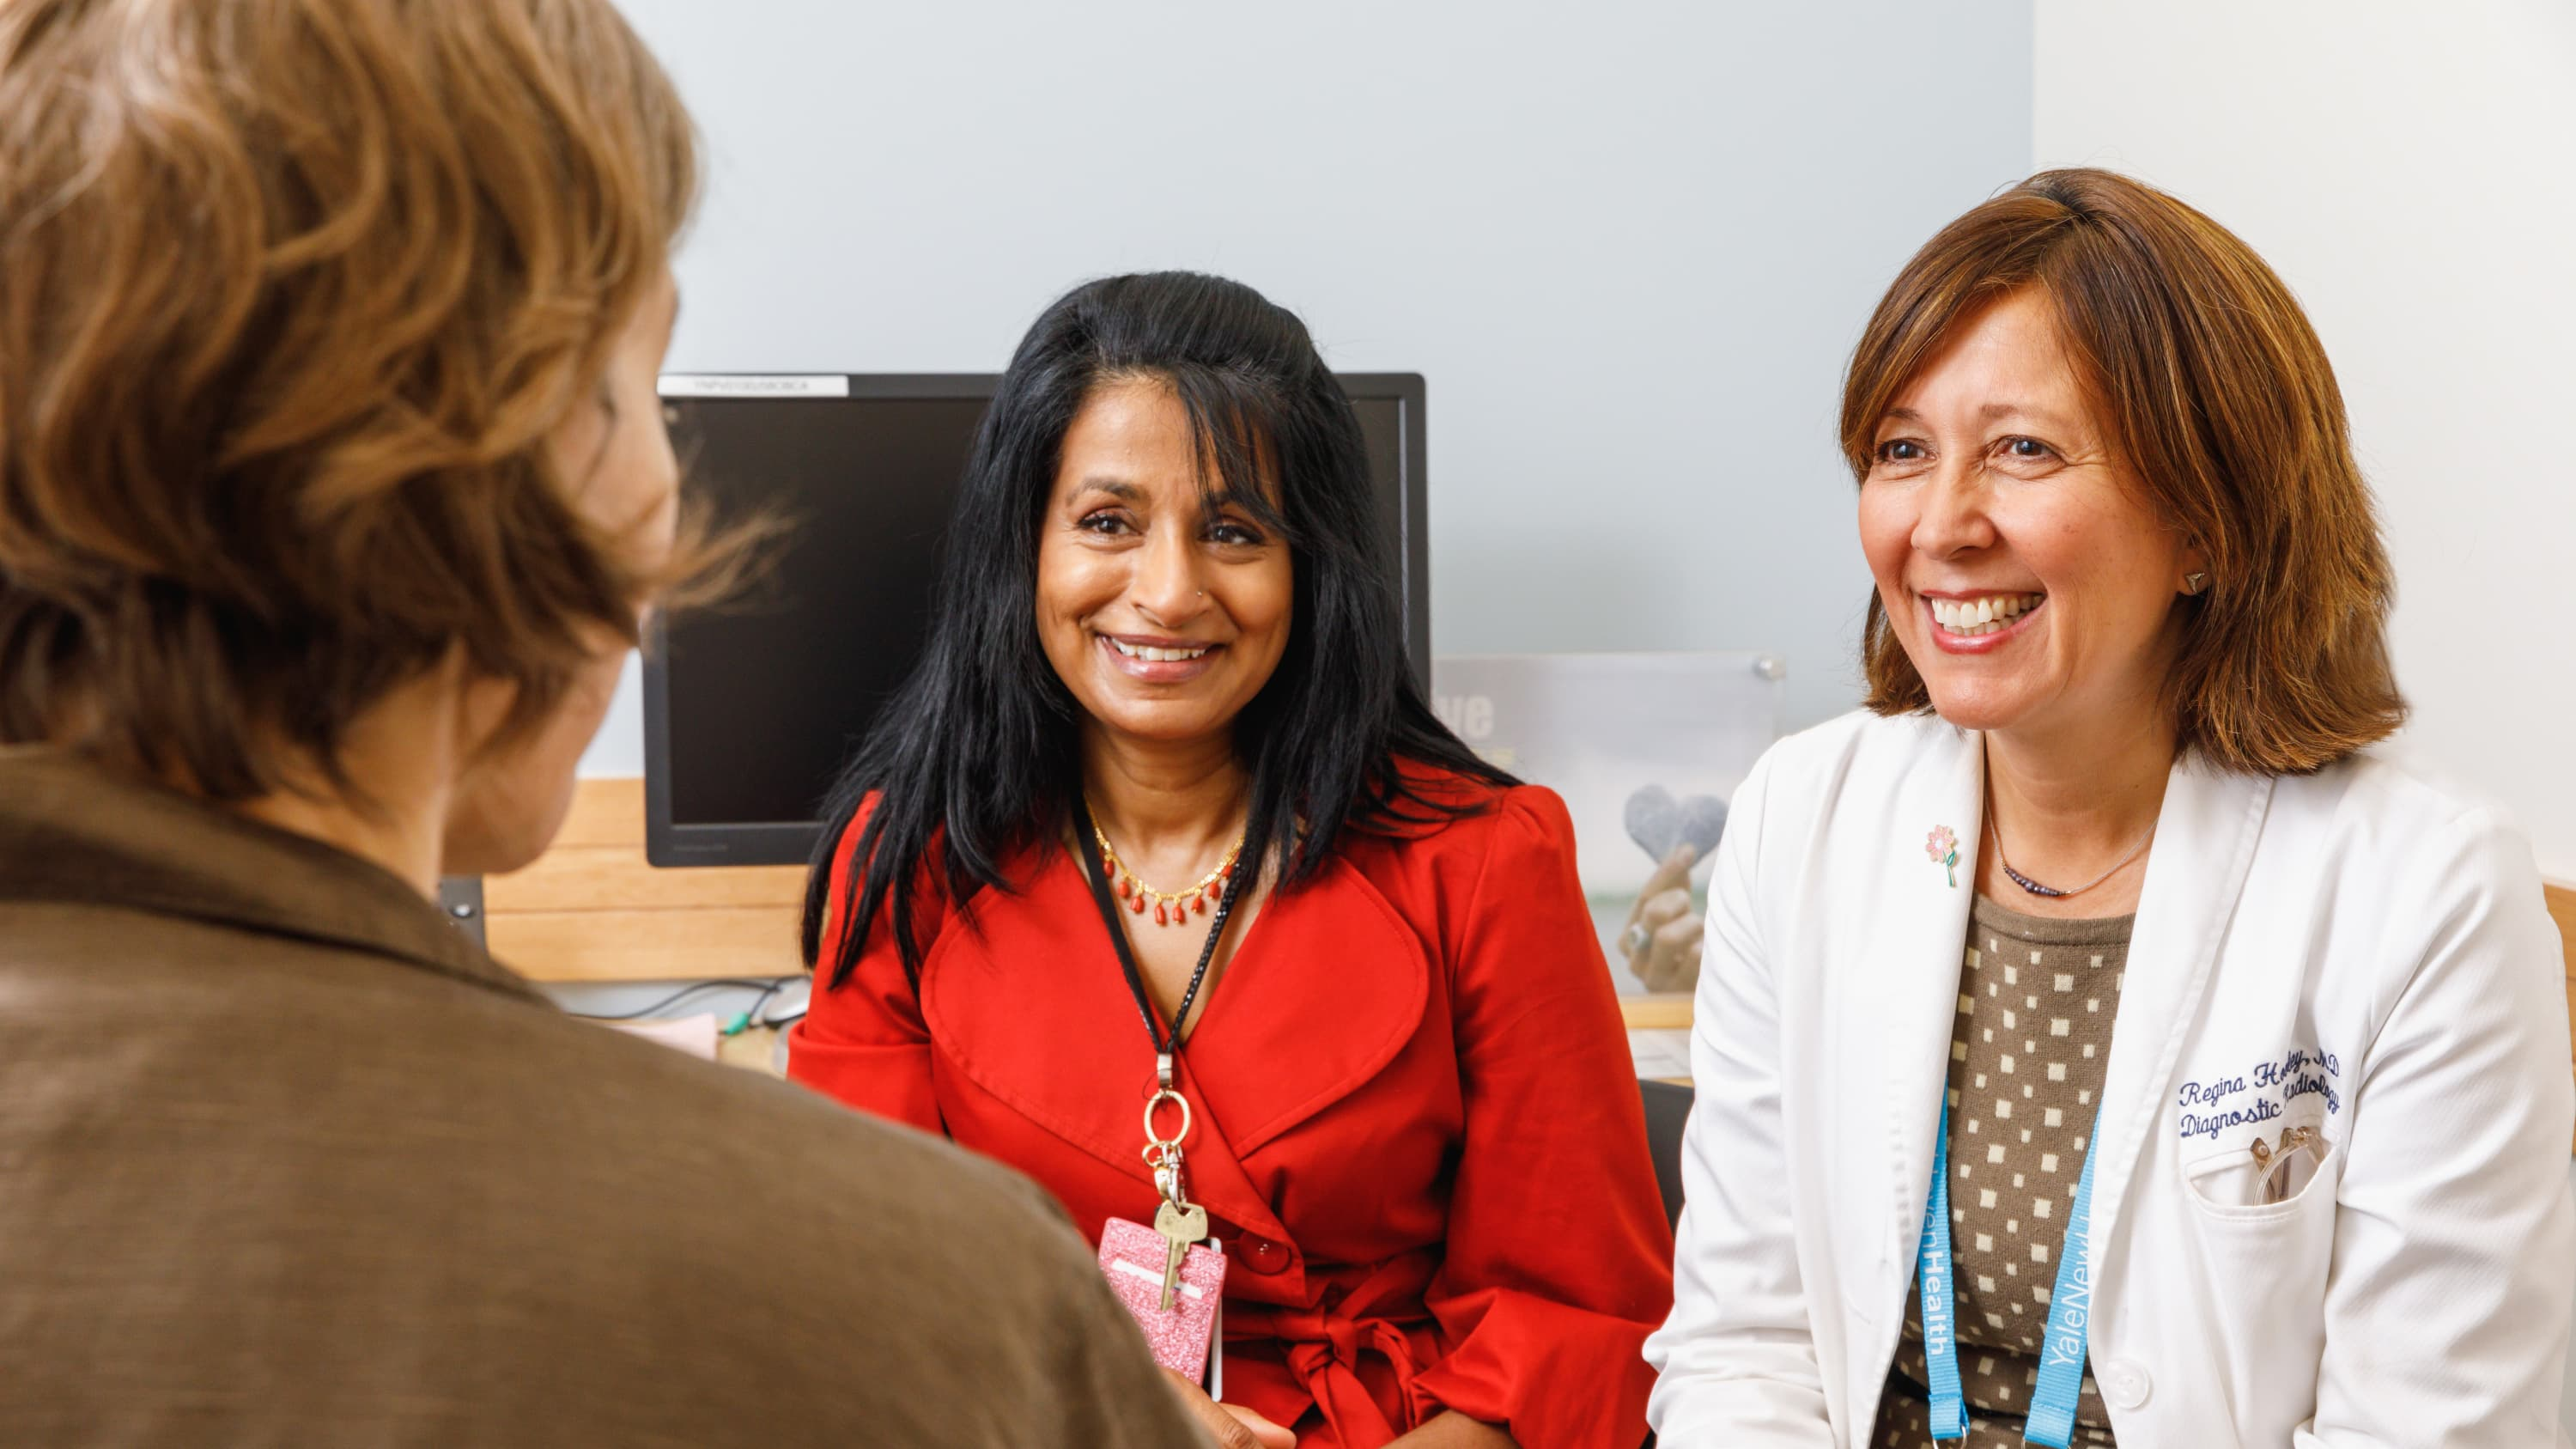 Dr.  Moran (left) and Dr. Hooley (right) consult with a patient.